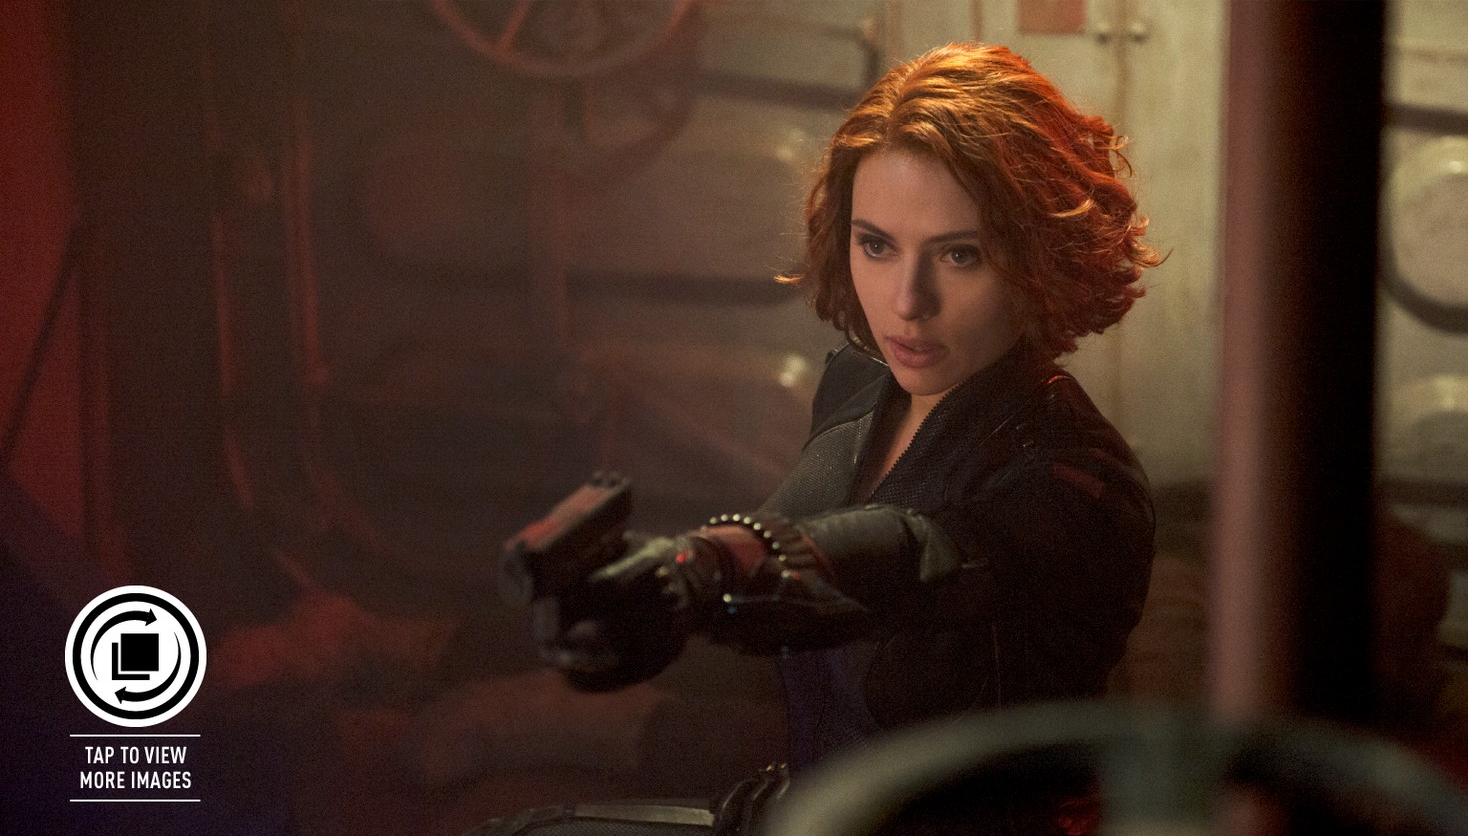 high-res-photos-from-avengers-age-of-ultron80